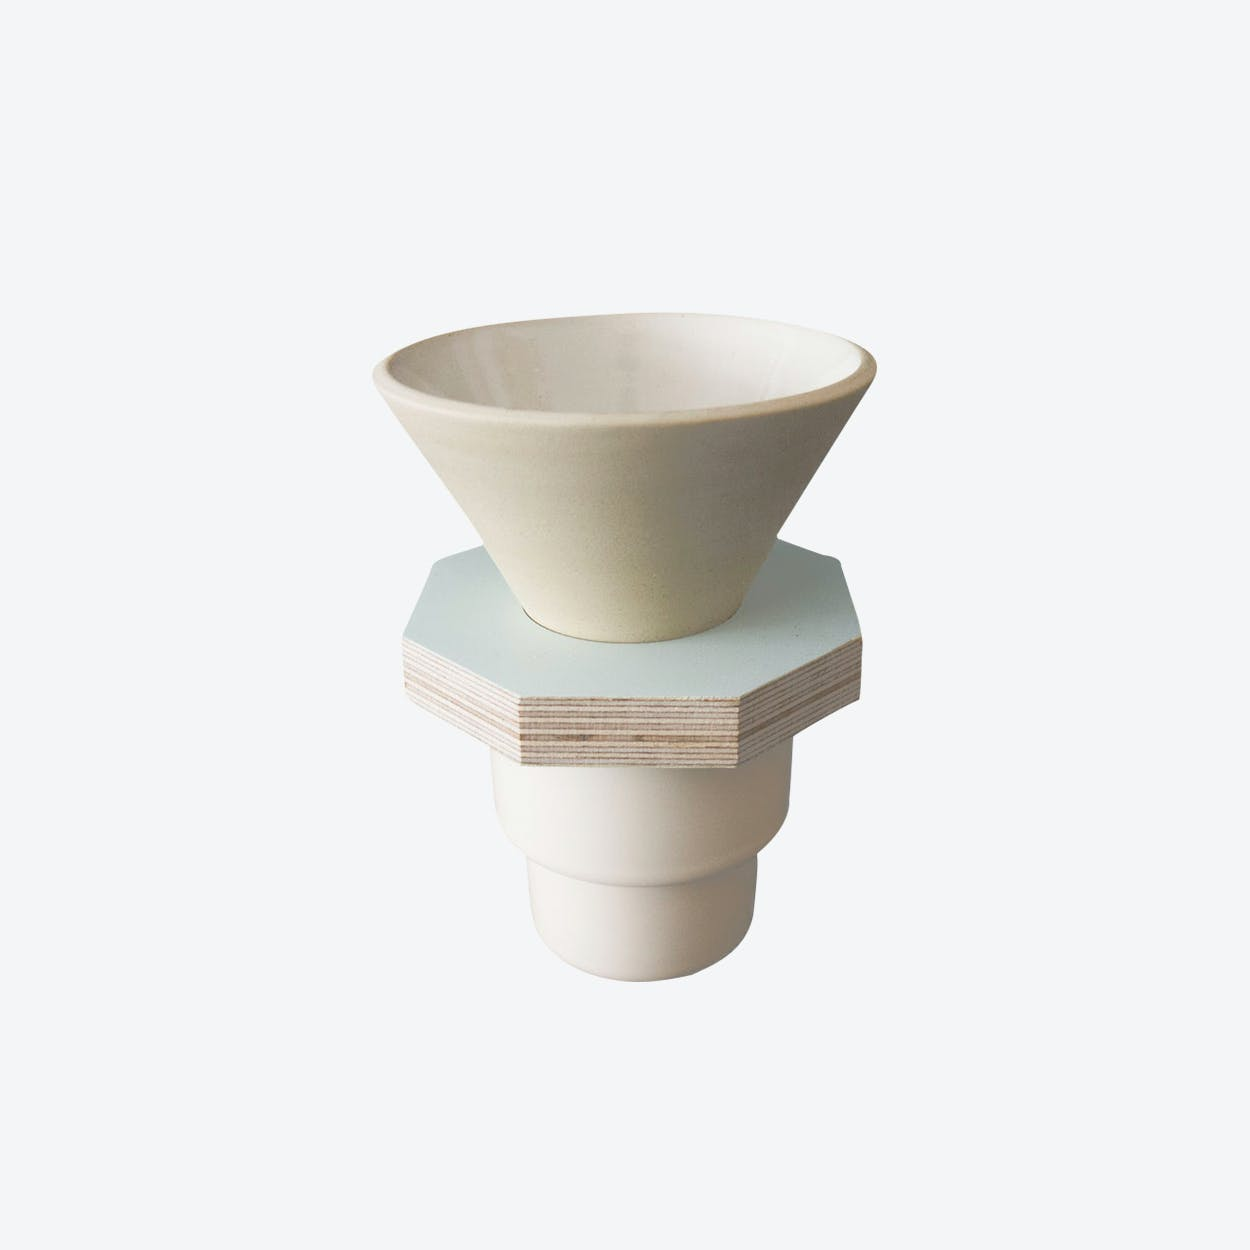 Ceramic Dripper in Beige and Lighr Blue Plywood